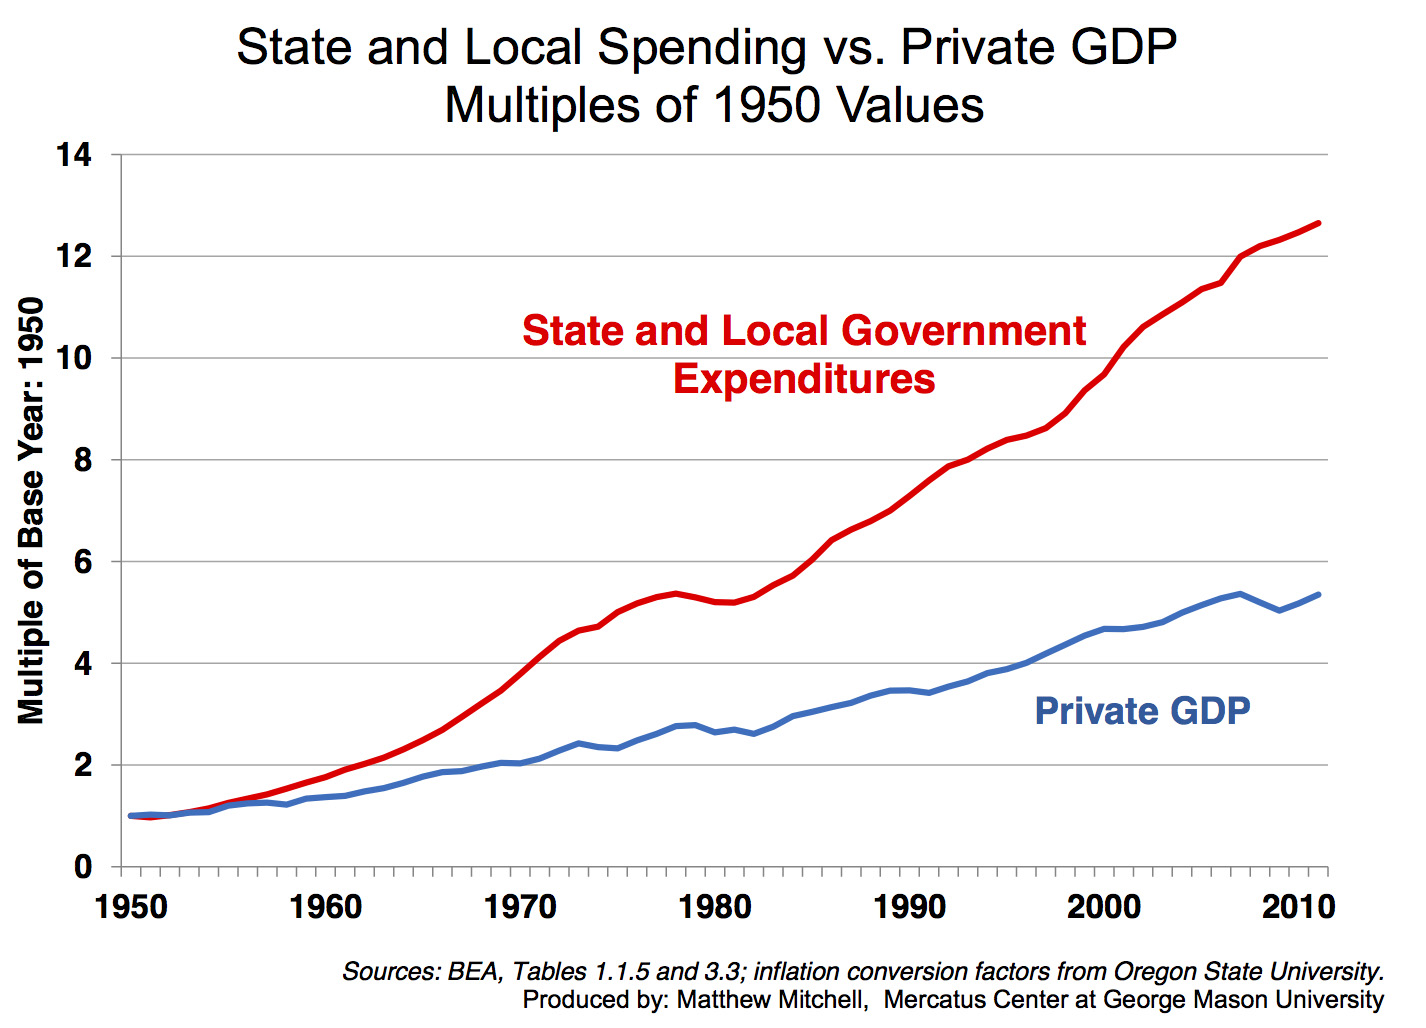 http://mercatus.org/sites/default/files/State-and-Local-Spending-vs-Private-GDP-original.jpg